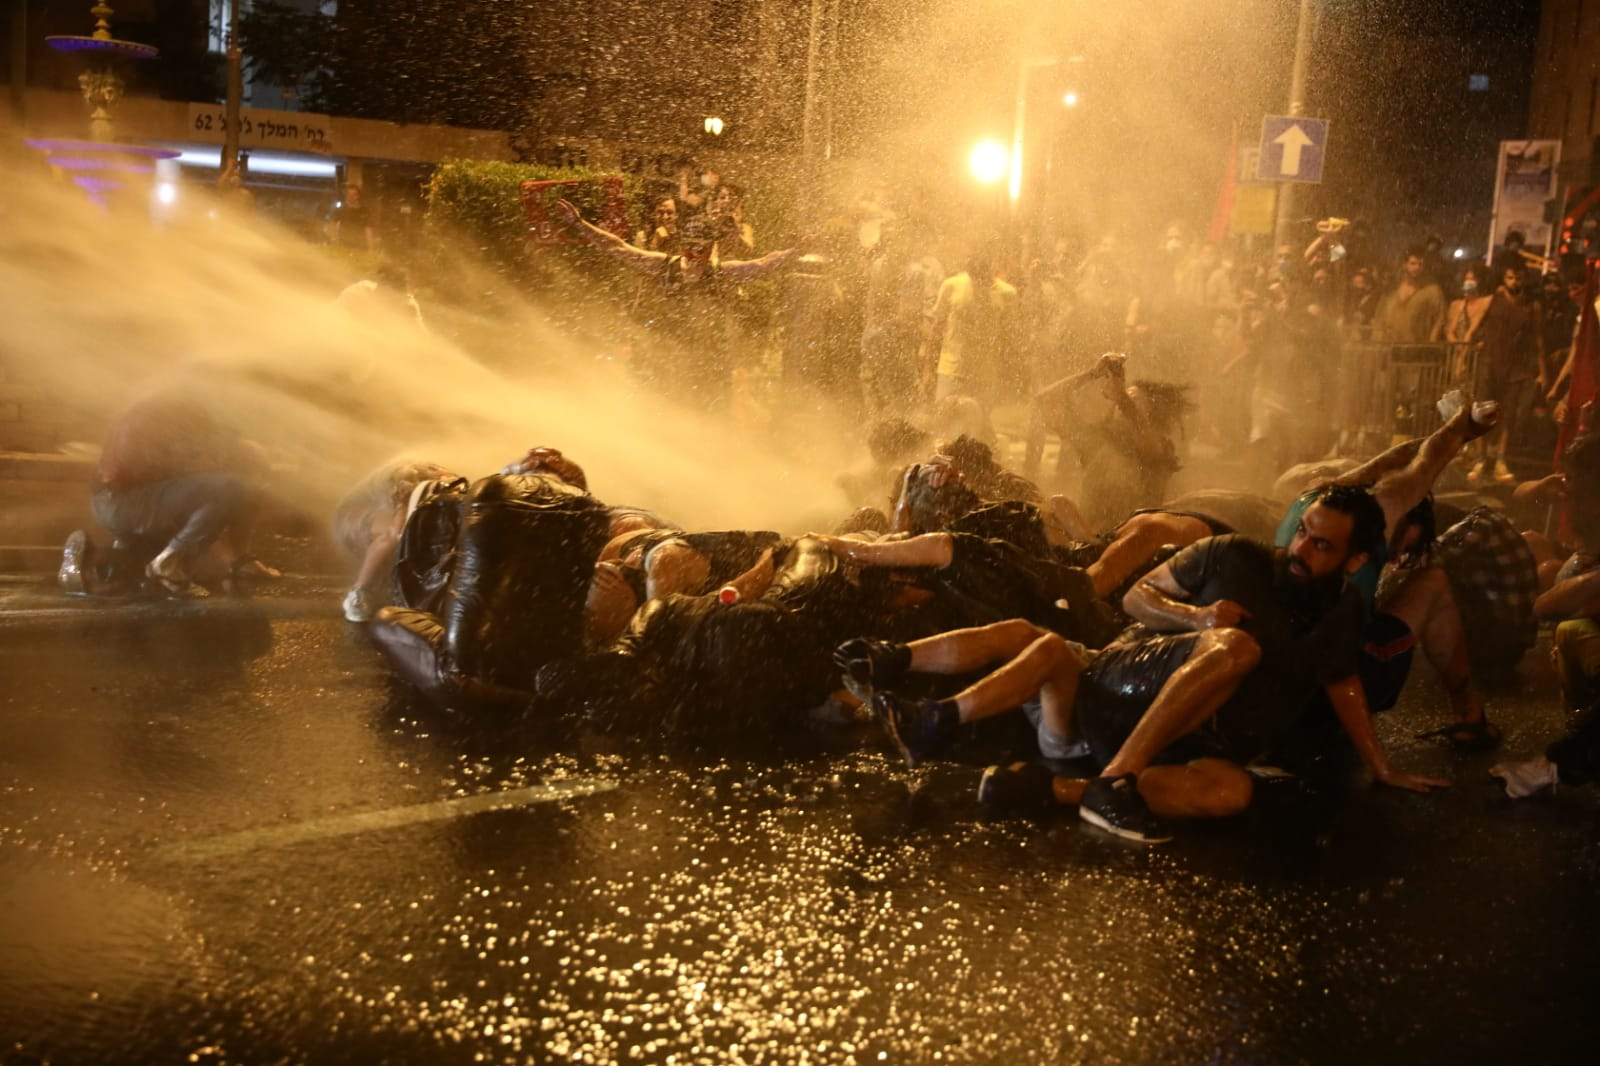 A police water cannon douses protesters in central Jerusalem during clashes that followed a mass demonstration outside the Prime Minister's Residence, July 14, 2020. (Oren Ziv/Activestills)